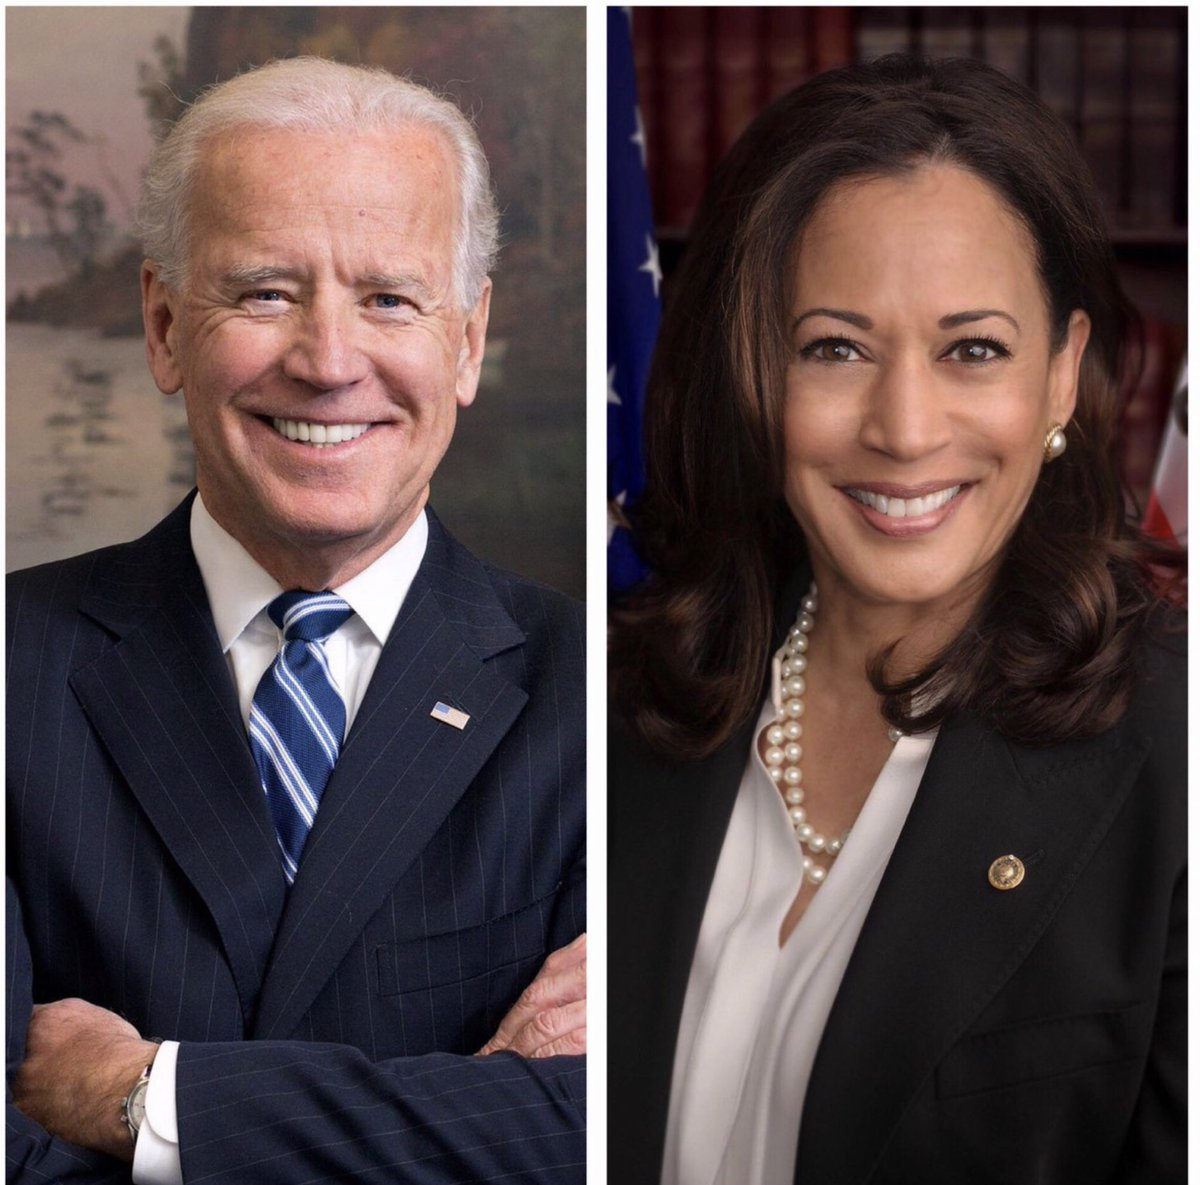 #COUNTDOWN: Jan 19, 2021/ #ONE day until the inauguration of @JoeBiden   REJOICE, FOR TOMORROW AFTERNOON THE #RESISTANCE WILL HAVE TAKEN BACK OUR COUNTRY.   NEVER FORGET THOSE WHO COMMITTED INSURRECTION IN BEHALF OF A FRAUD- #DonaldTrump   UNITE & REBUILD THE COUNTRY WE LOVE 🇺🇸